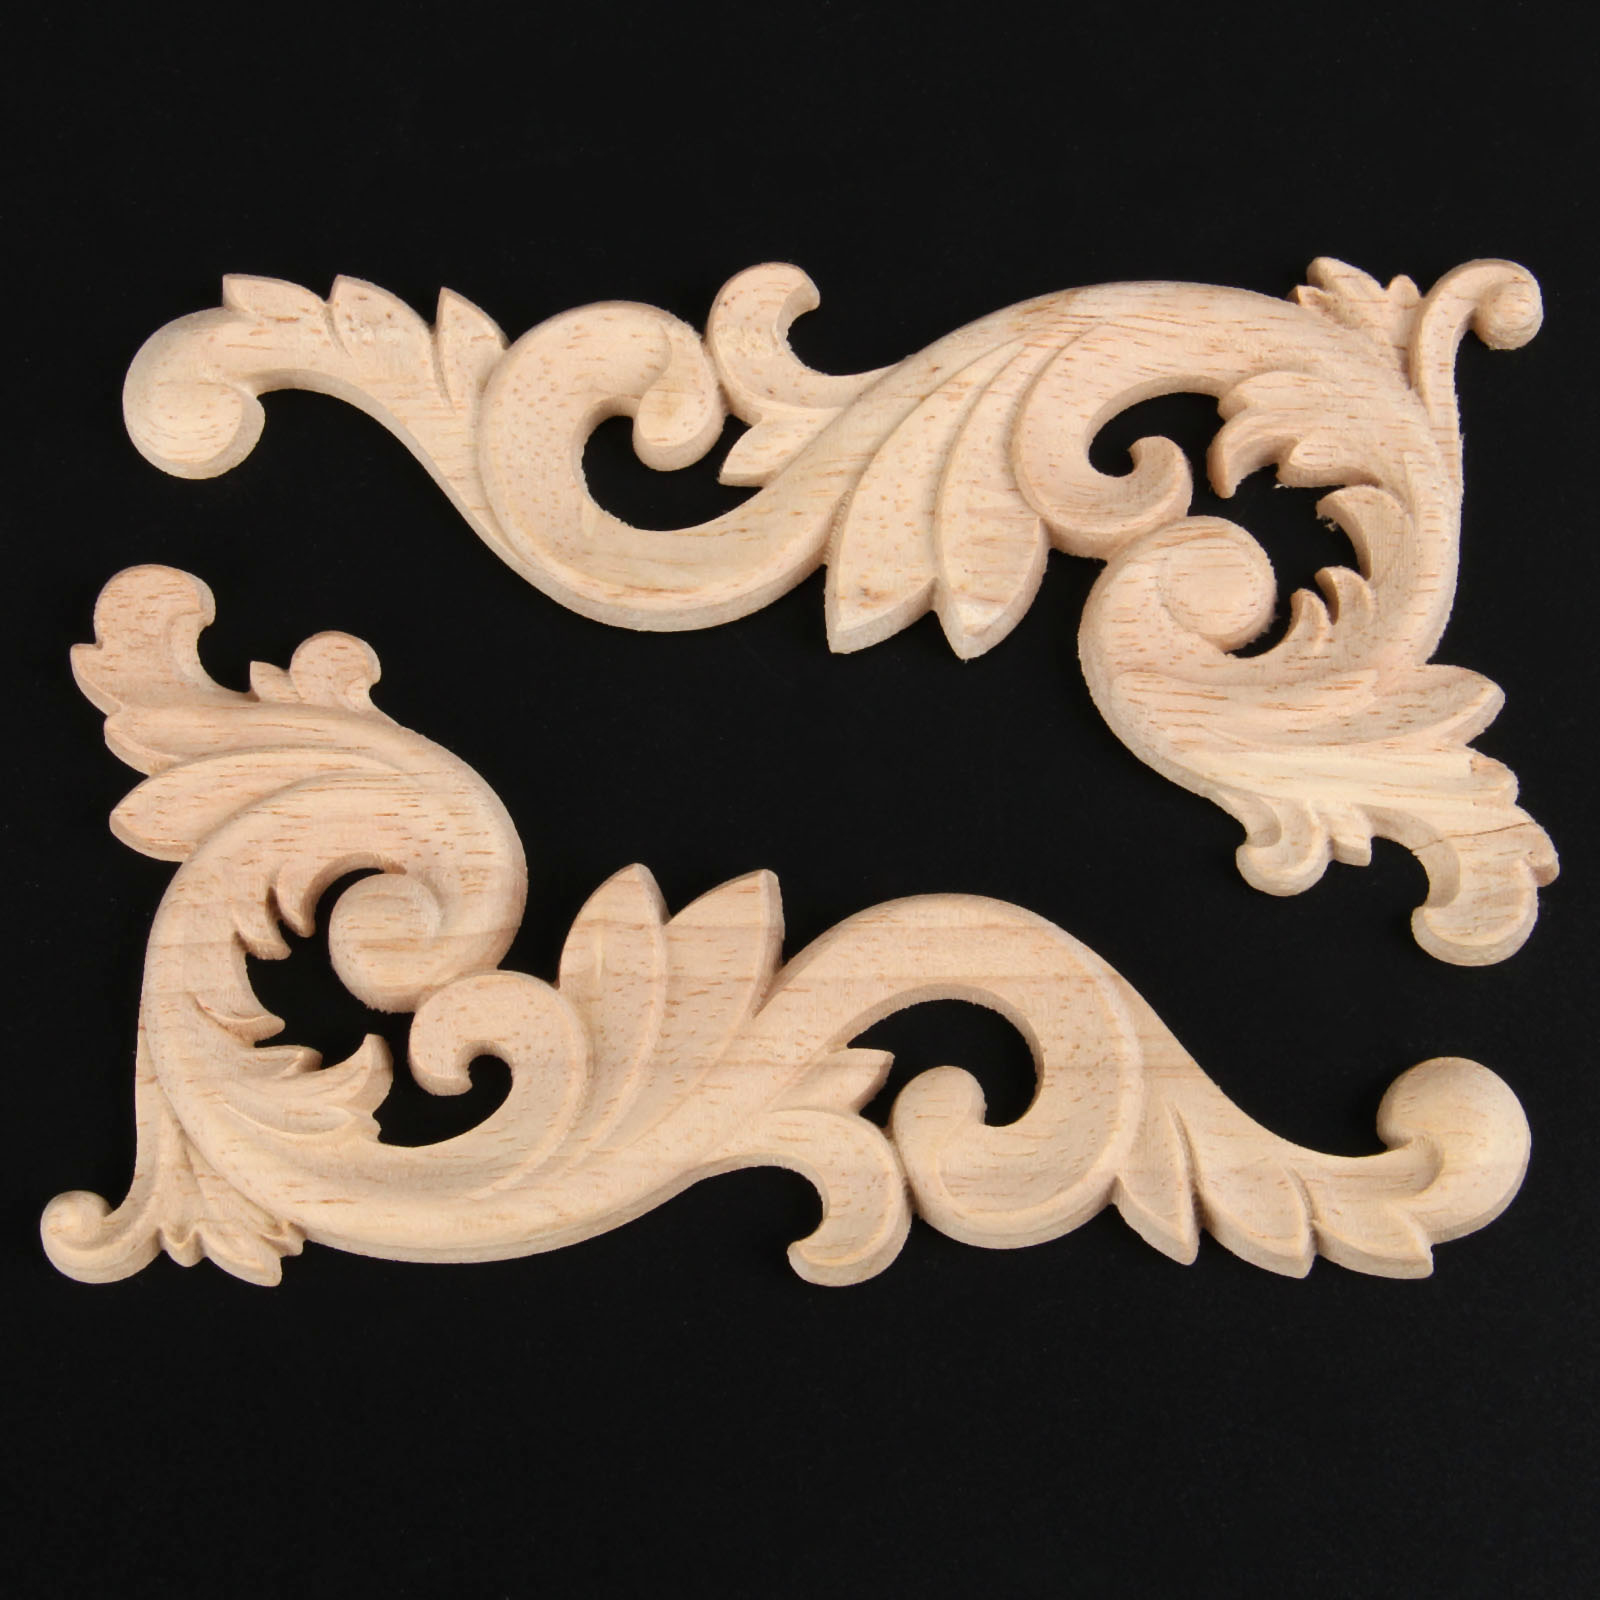 Woodcarving Decal Corner Applique Frame Door Decorate Wall Furniture Decorative Figurines Wooden Miniatures Home Decor 15*8cm family home indoor horizontal bar on the door frame wall fitness chin up device